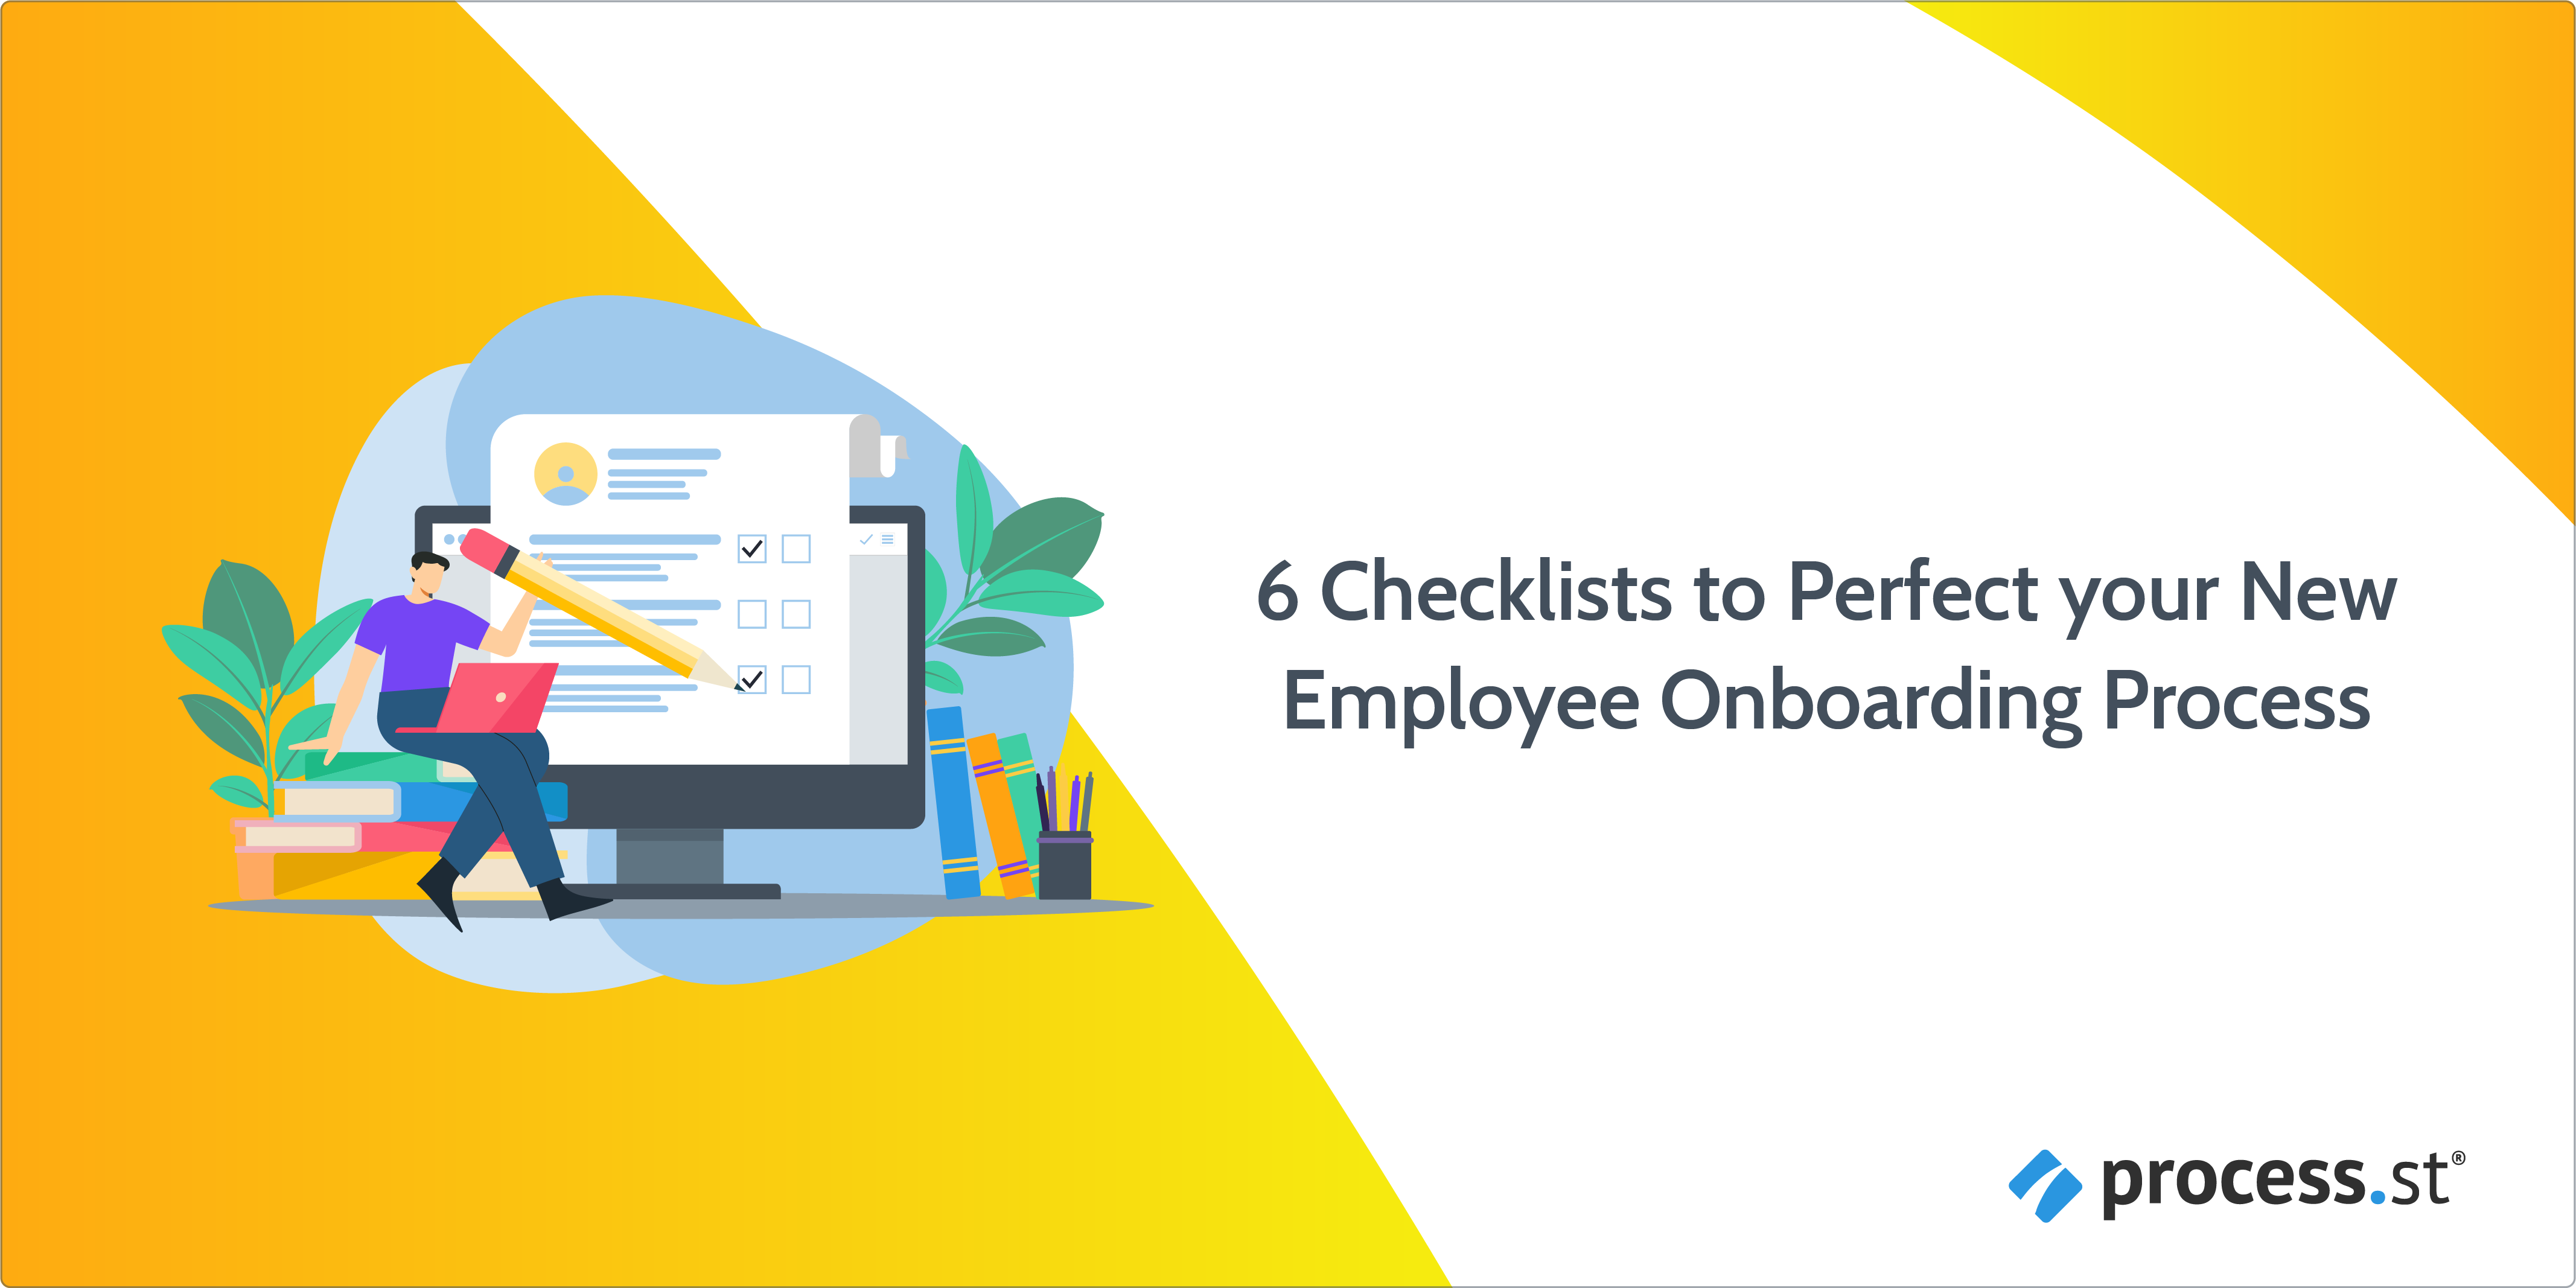 6 Checklists to Perfect Your New Employee Onboarding Process